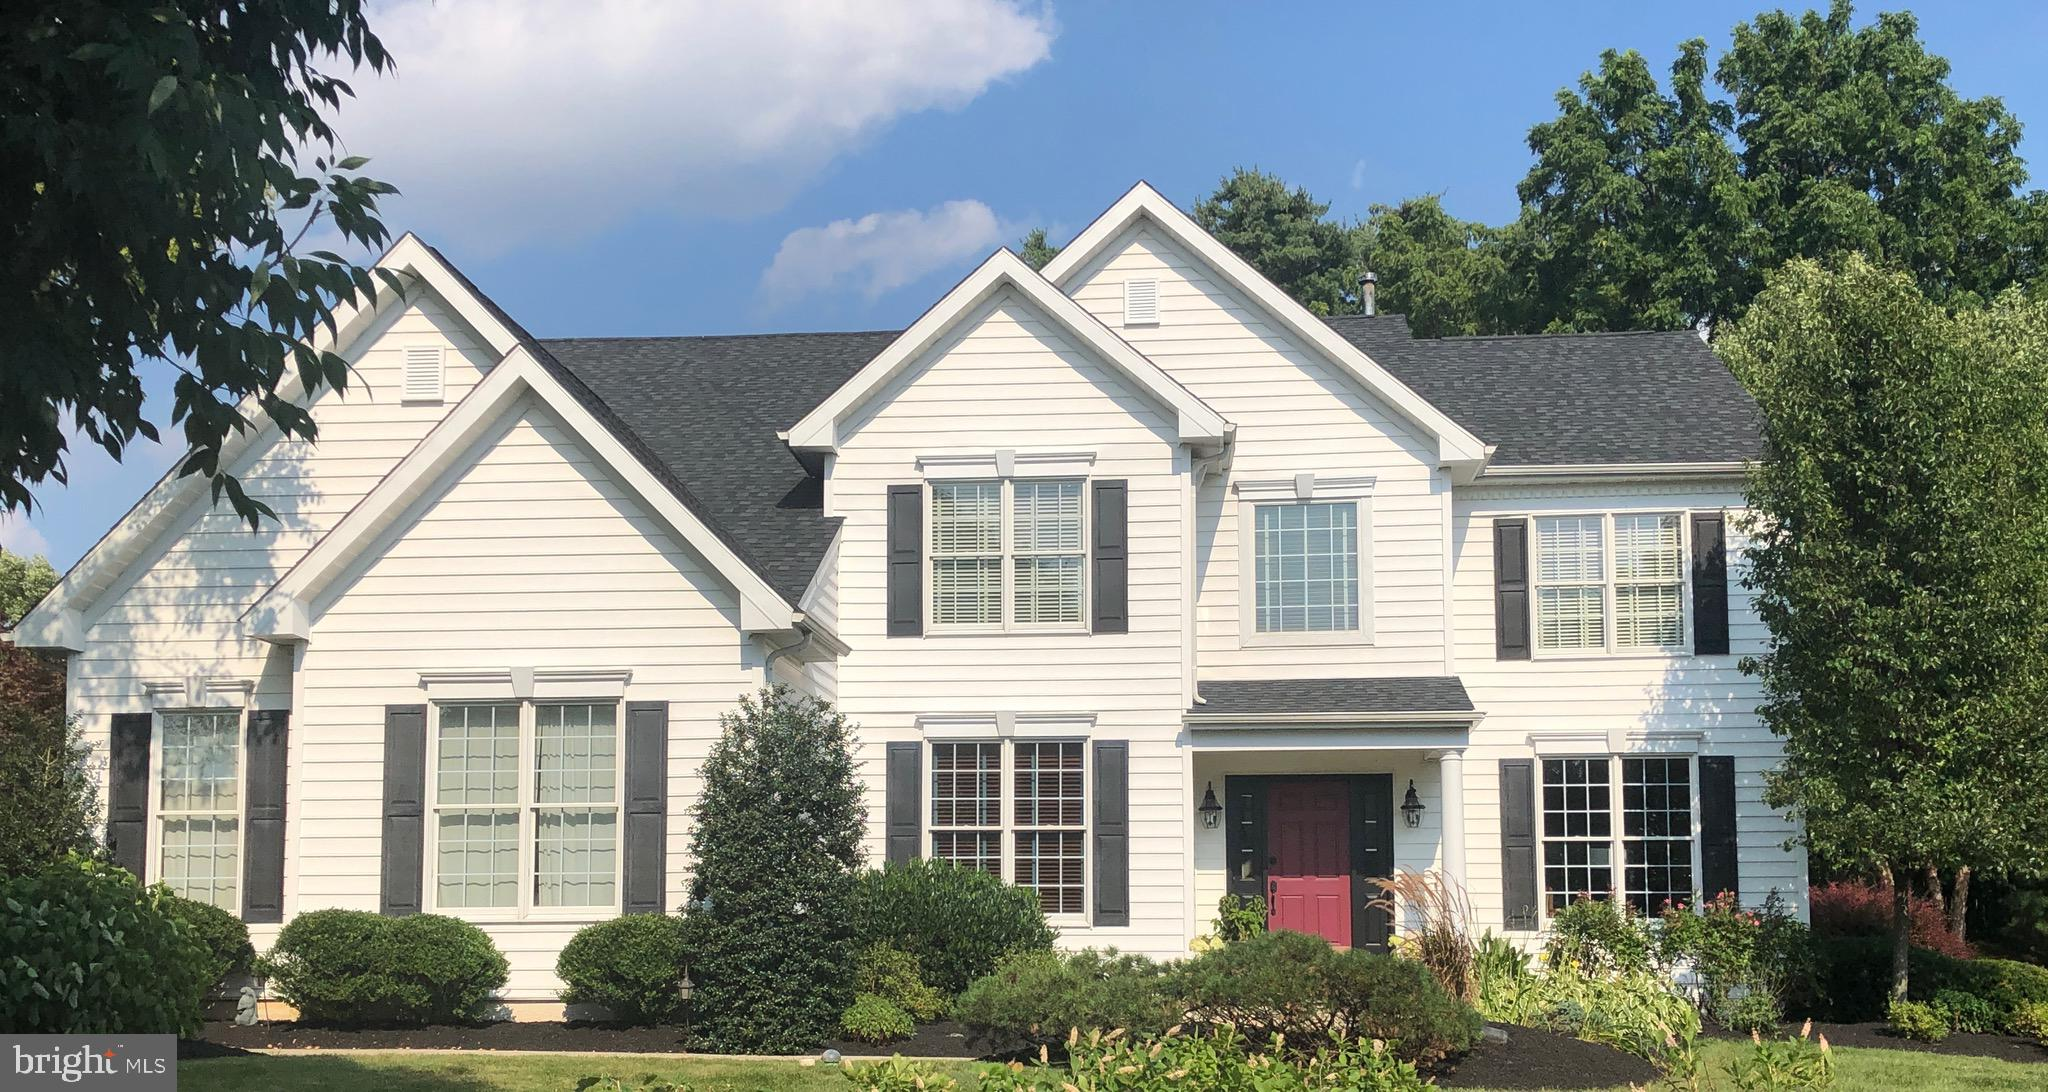 215 GREEN VALLEY ROAD, EXTON, PA 19341